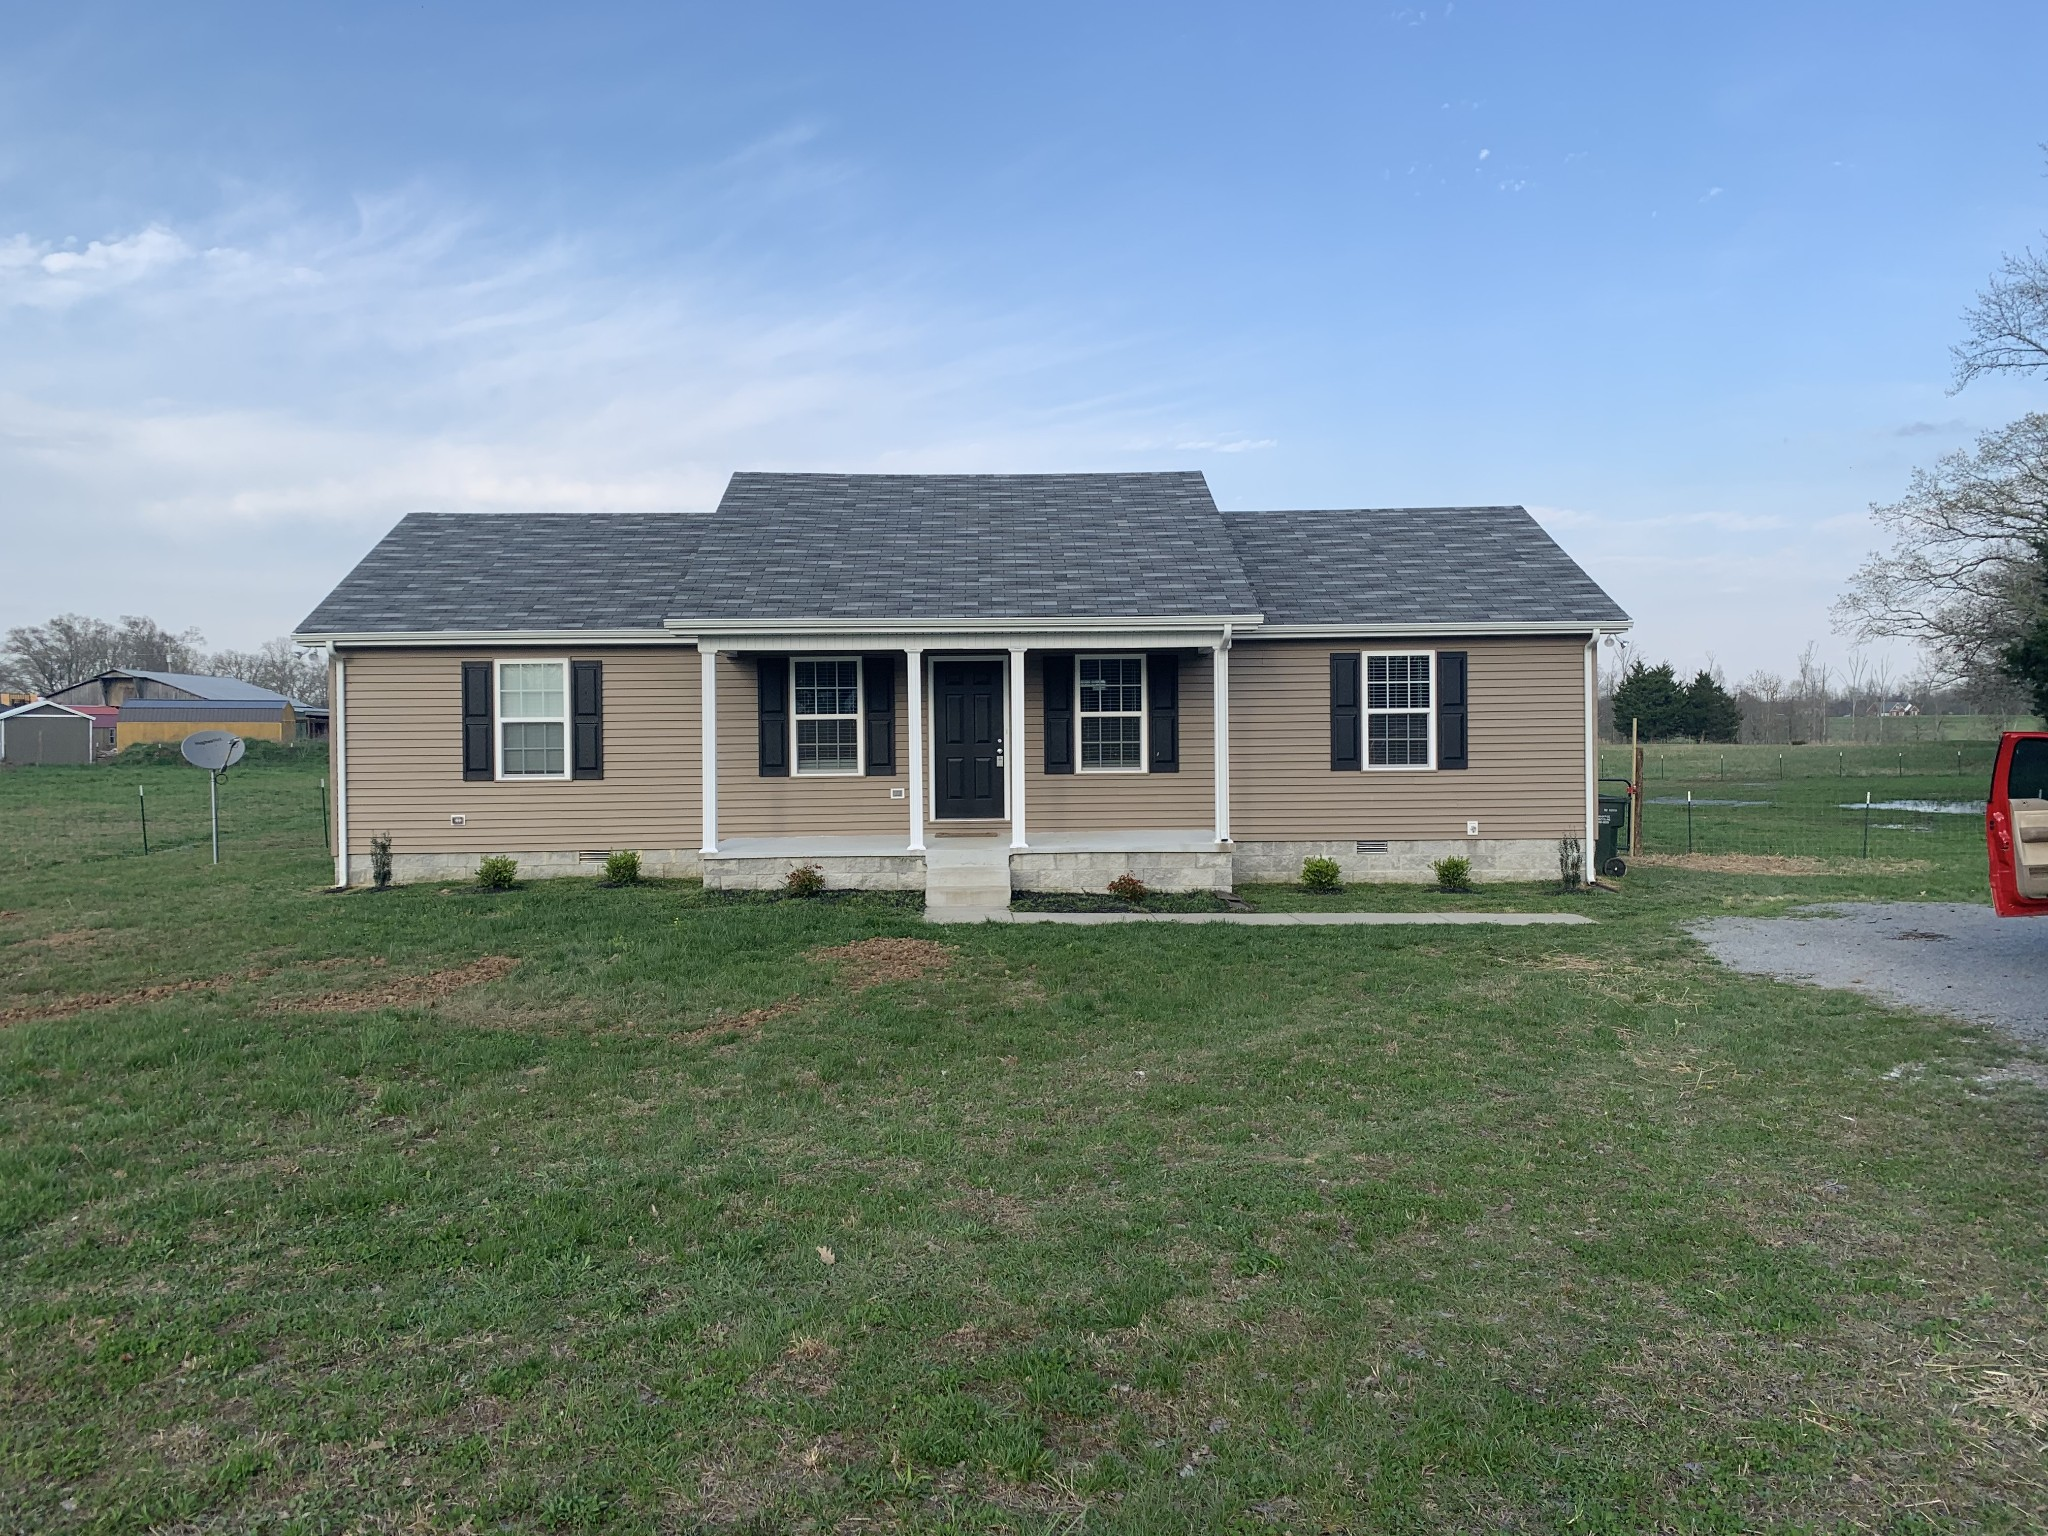 5841 McMinnville Highway, Woodbury, TN 37190 - Woodbury, TN real estate listing